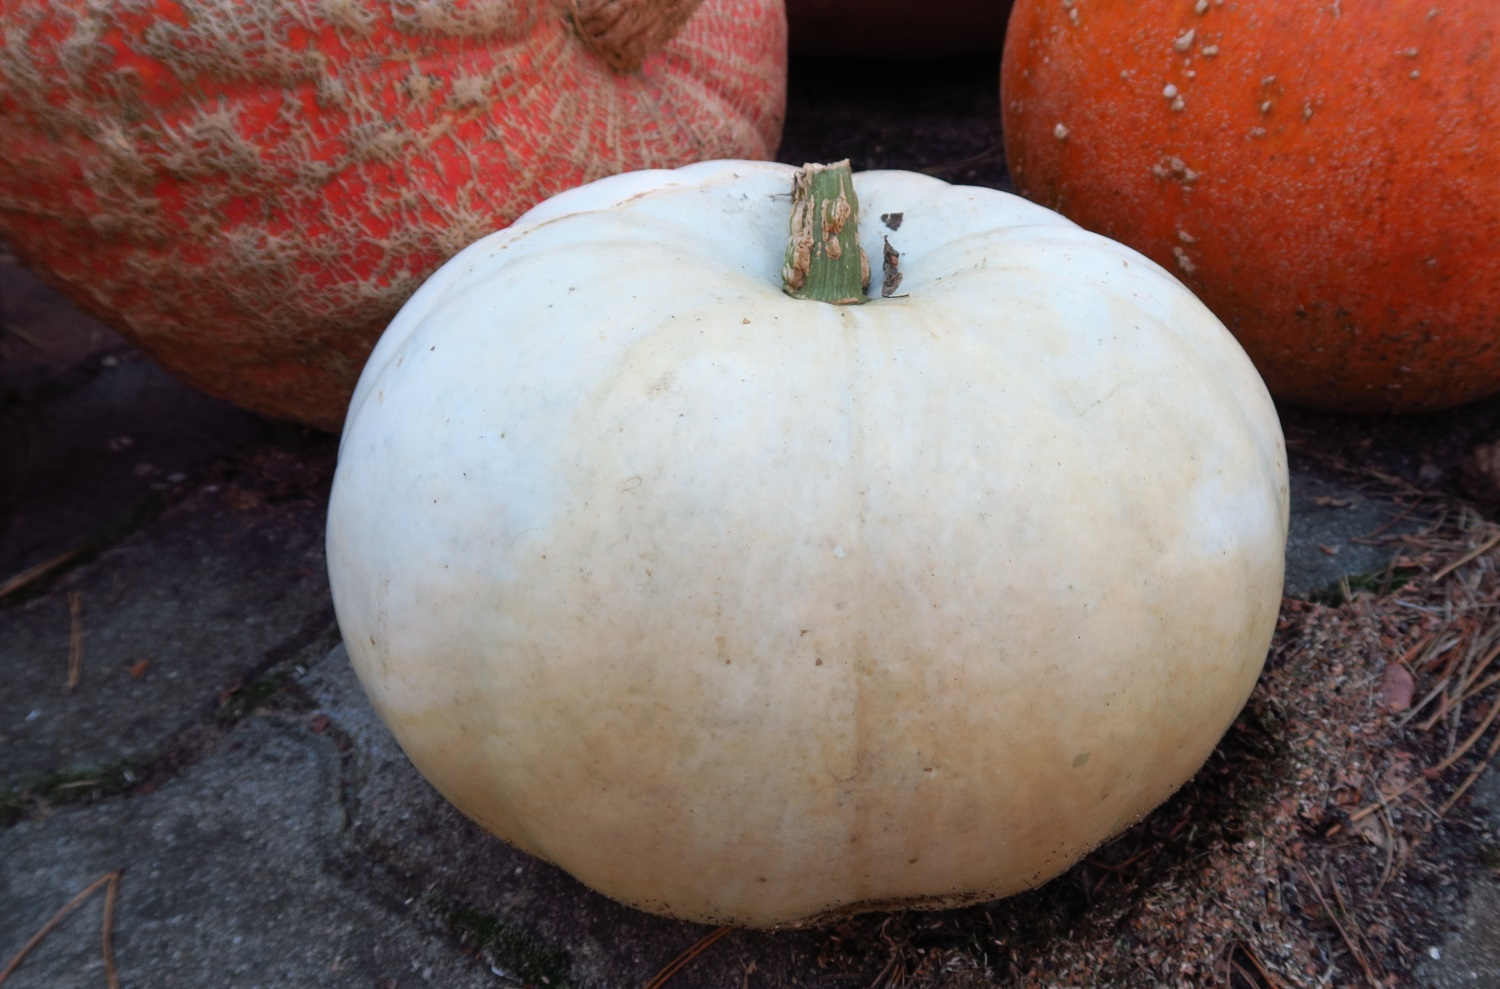 I planted several white pumpkin plants. I was disappointed to see only two white pumpkins.